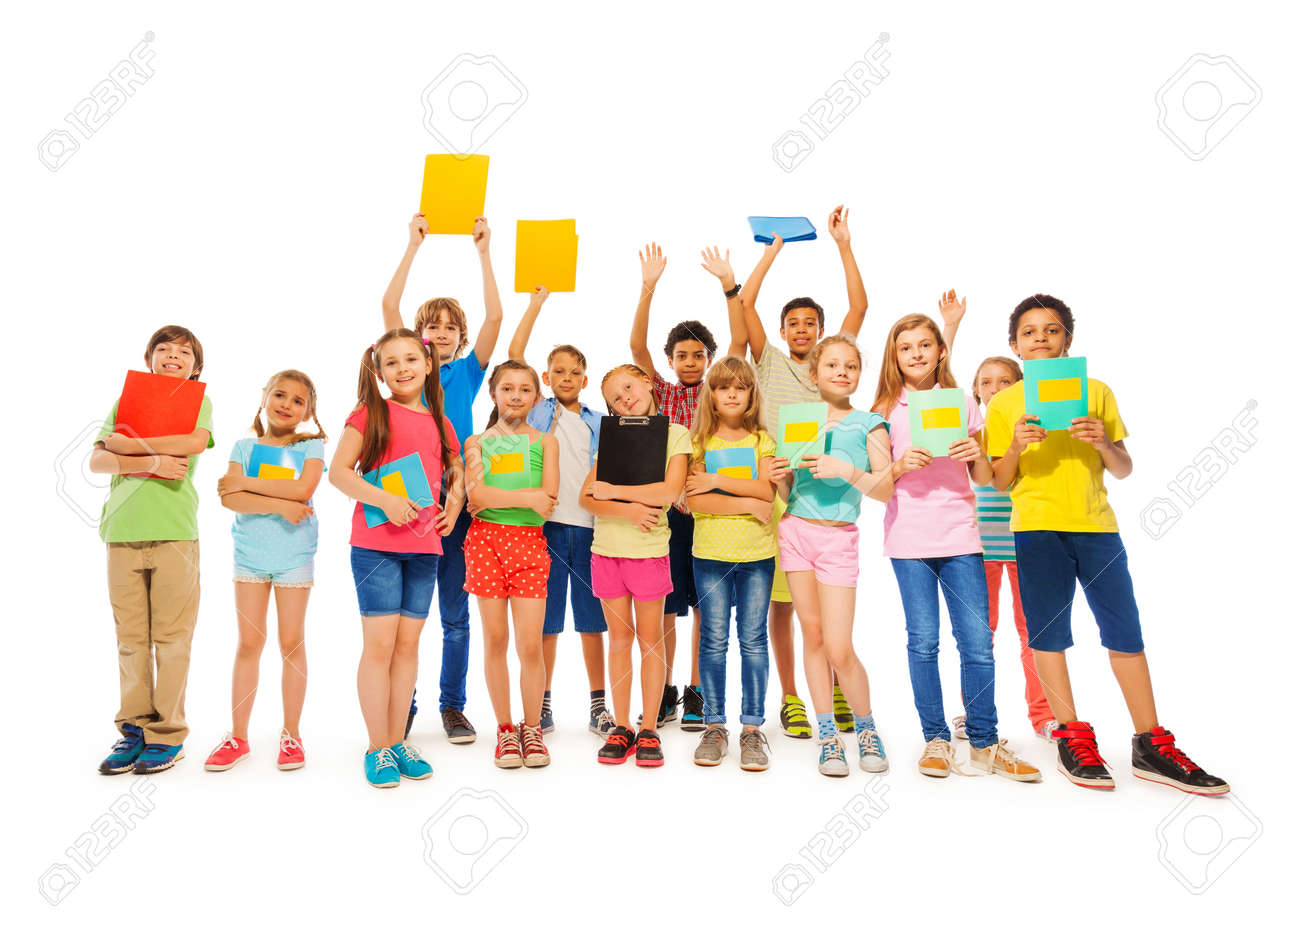 Large group of school kid standing with notebooks in fool body length smiling wearing colorful t-shirts - 44285327